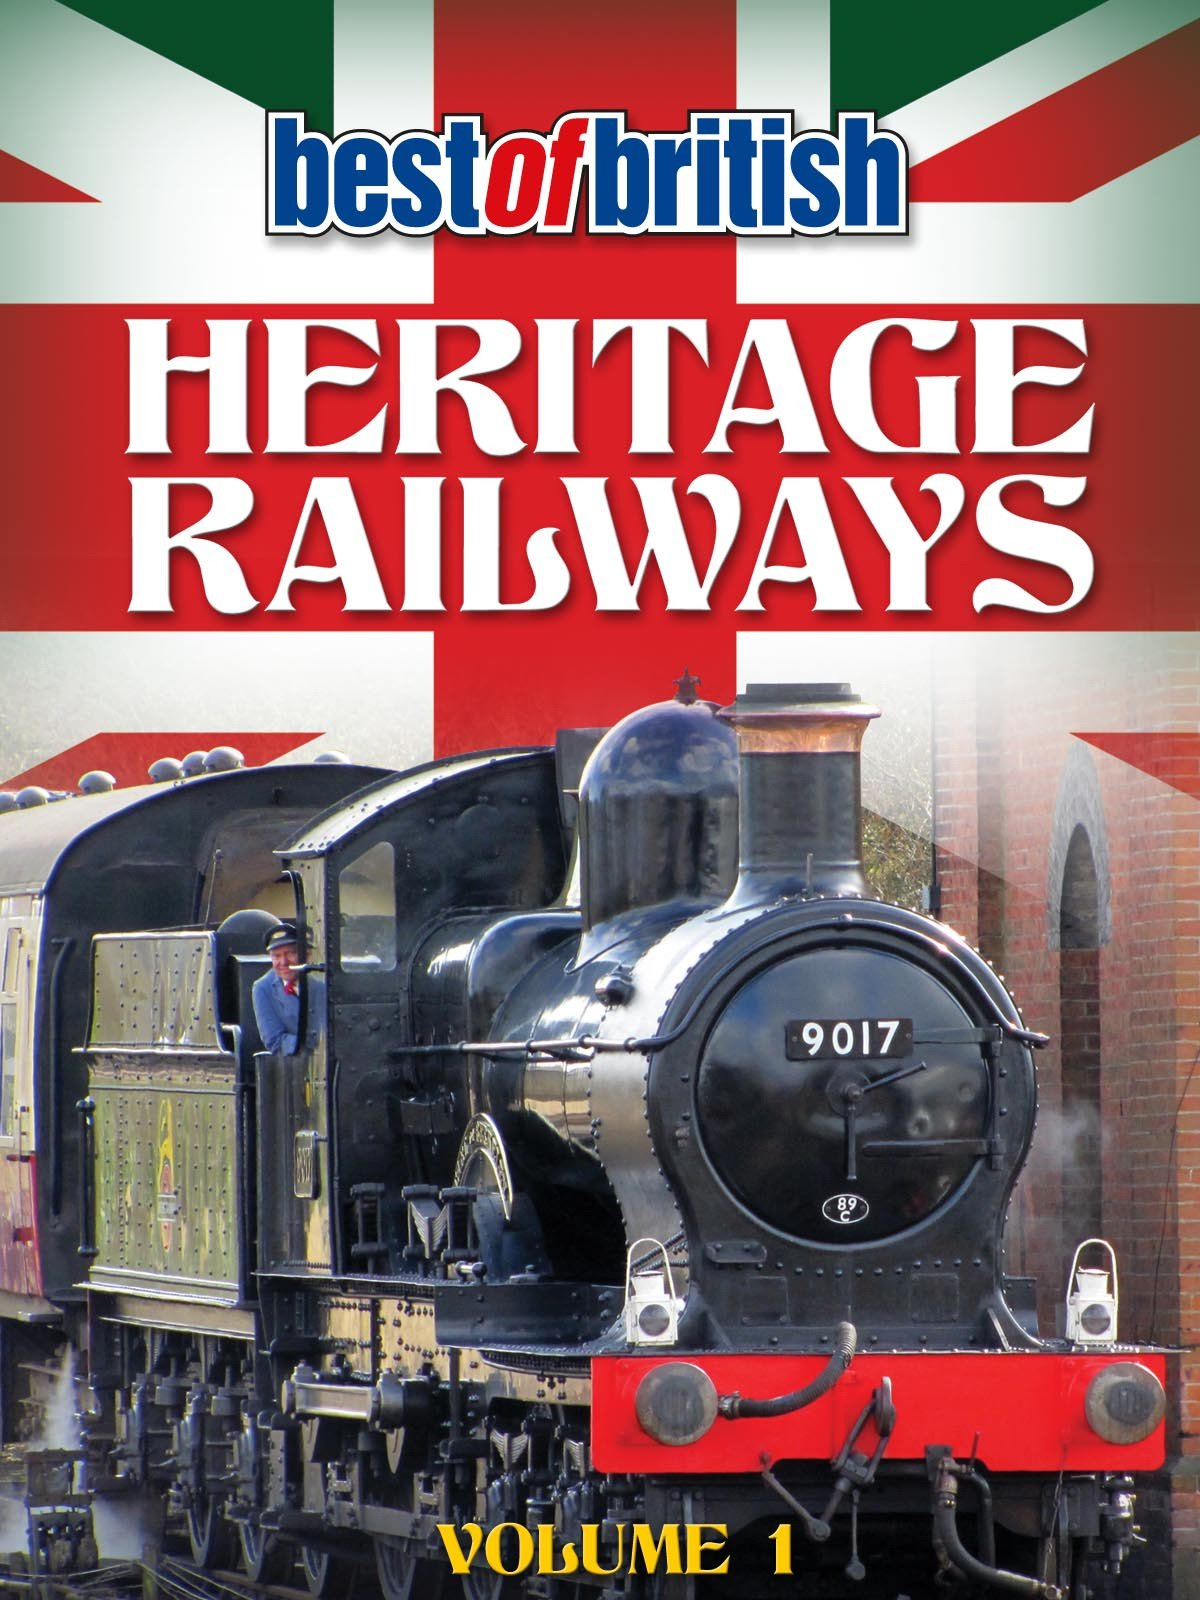 Best of British Heritage Railways Volume 1